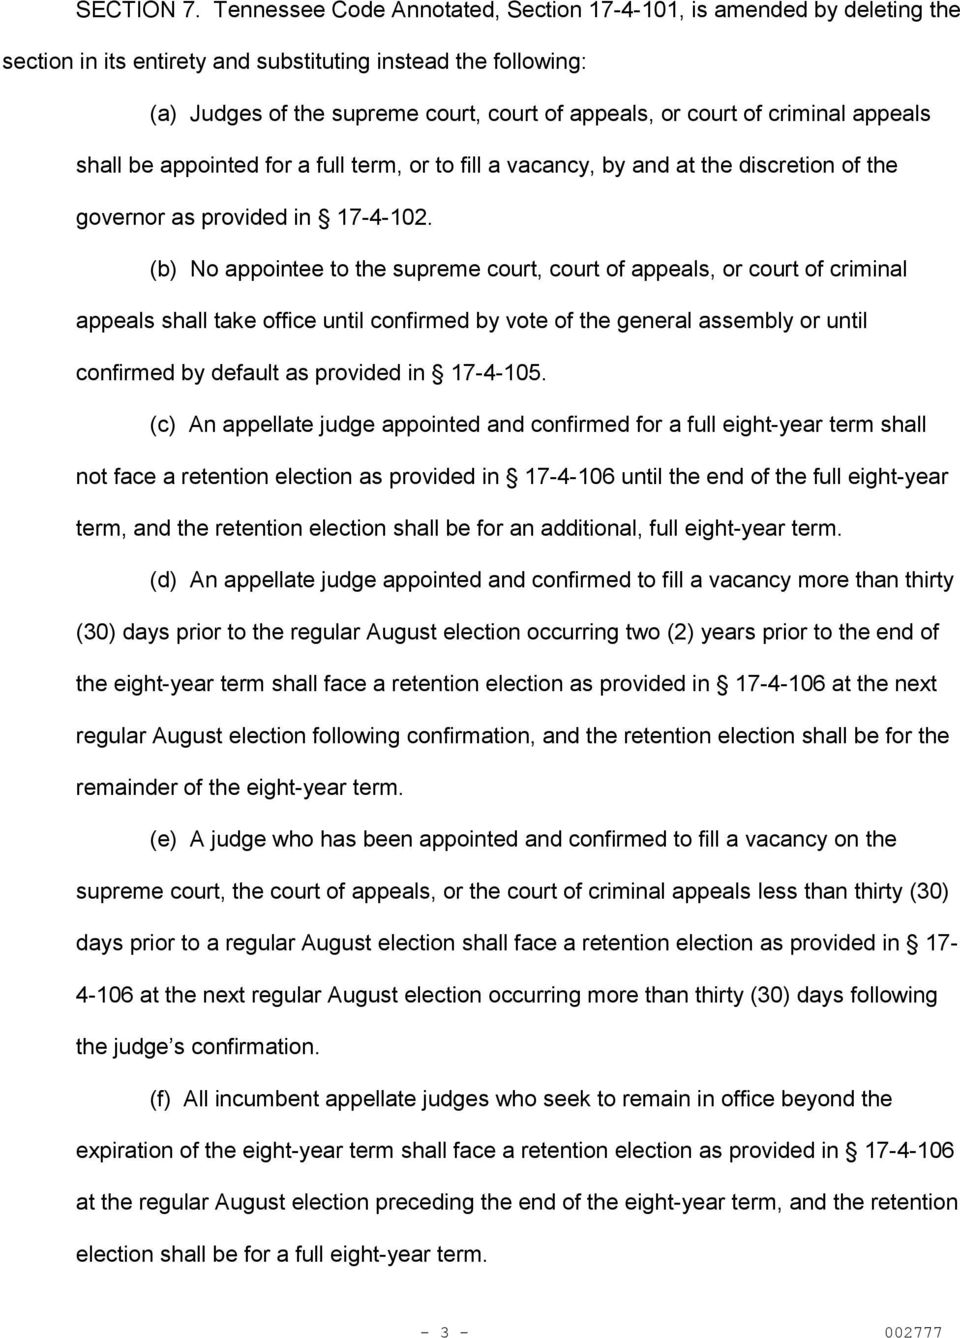 criminal appeals shall be appointed for a full term, or to fill a vacancy, by and at the discretion of the governor as provided in 17-4-102.